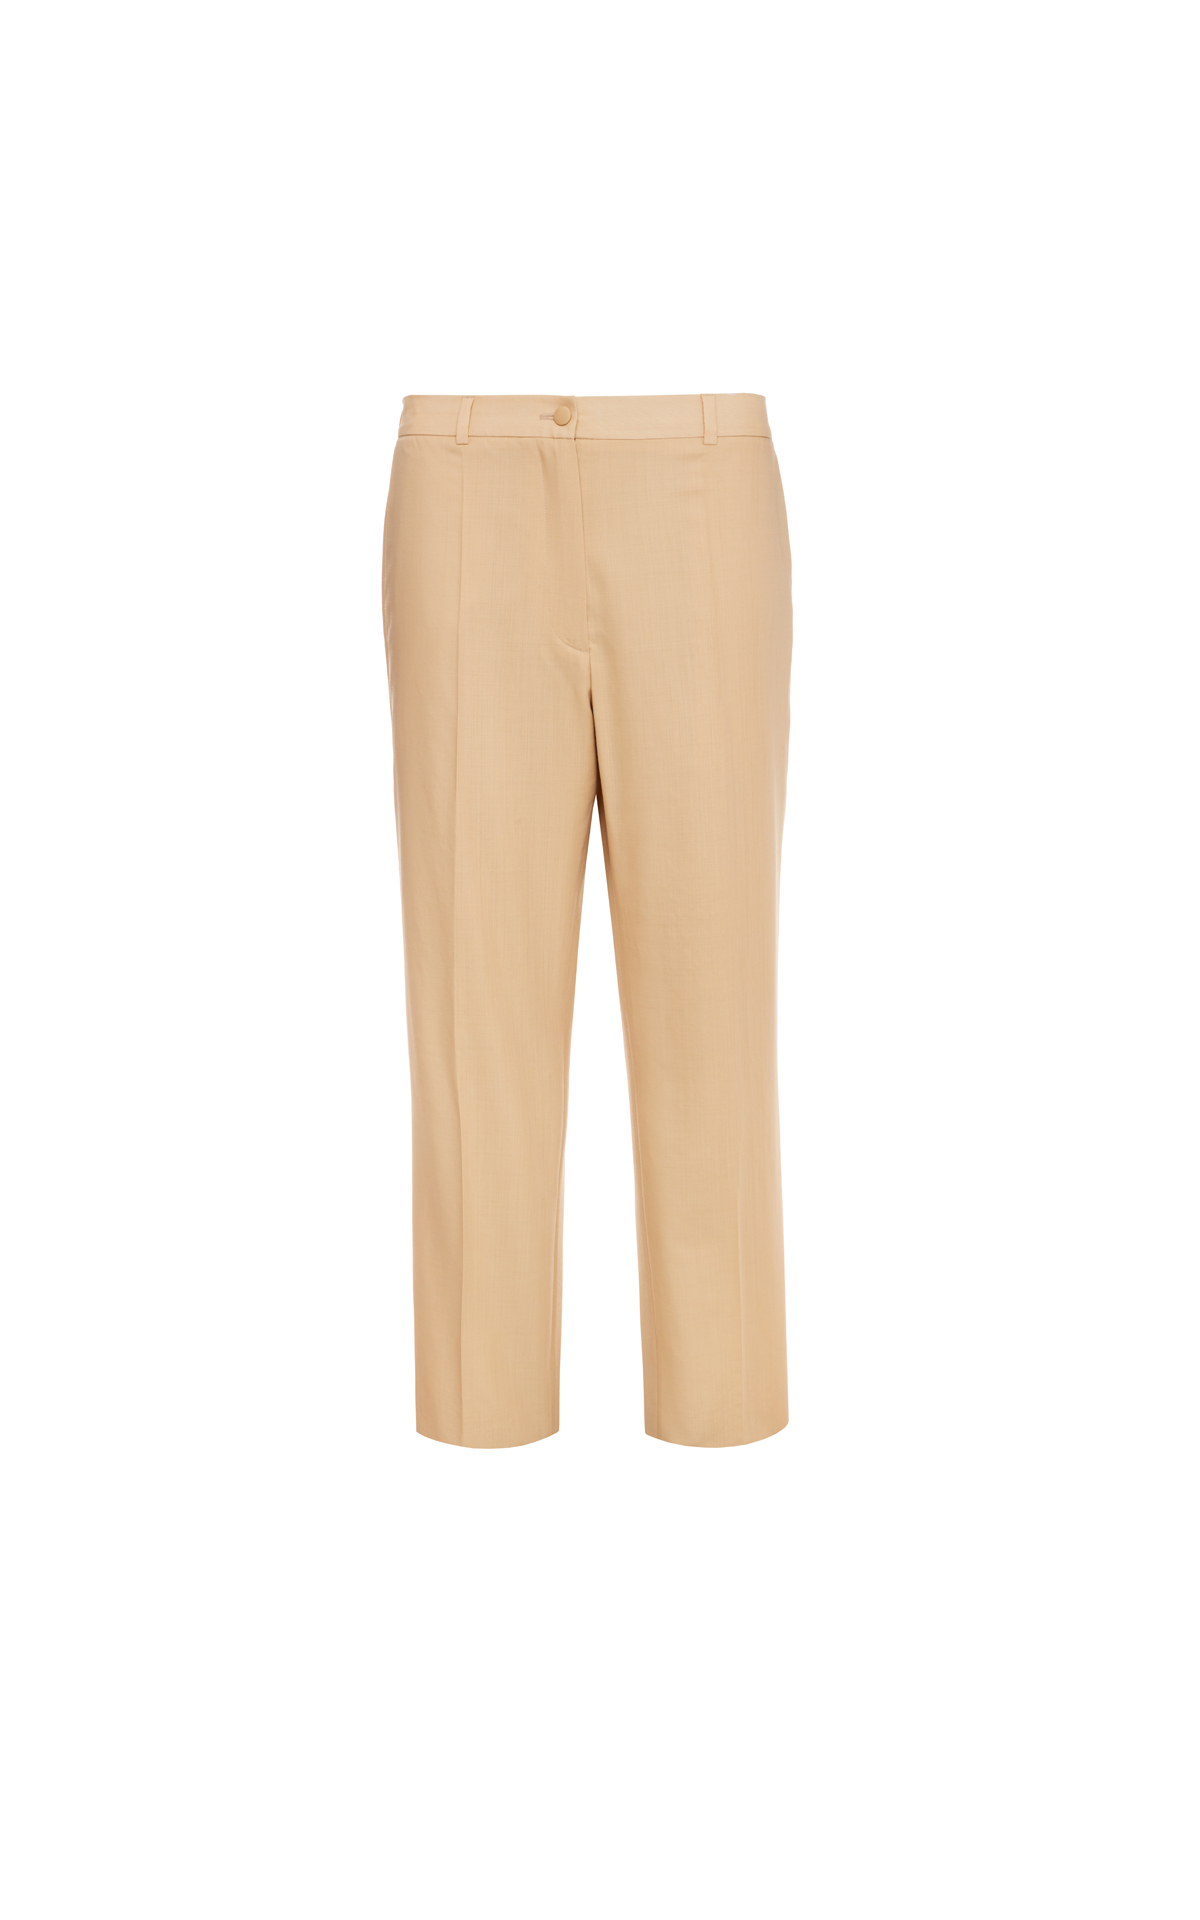 Golden Goose Deluxe Brand Taupe akoya pant from Bicester Village